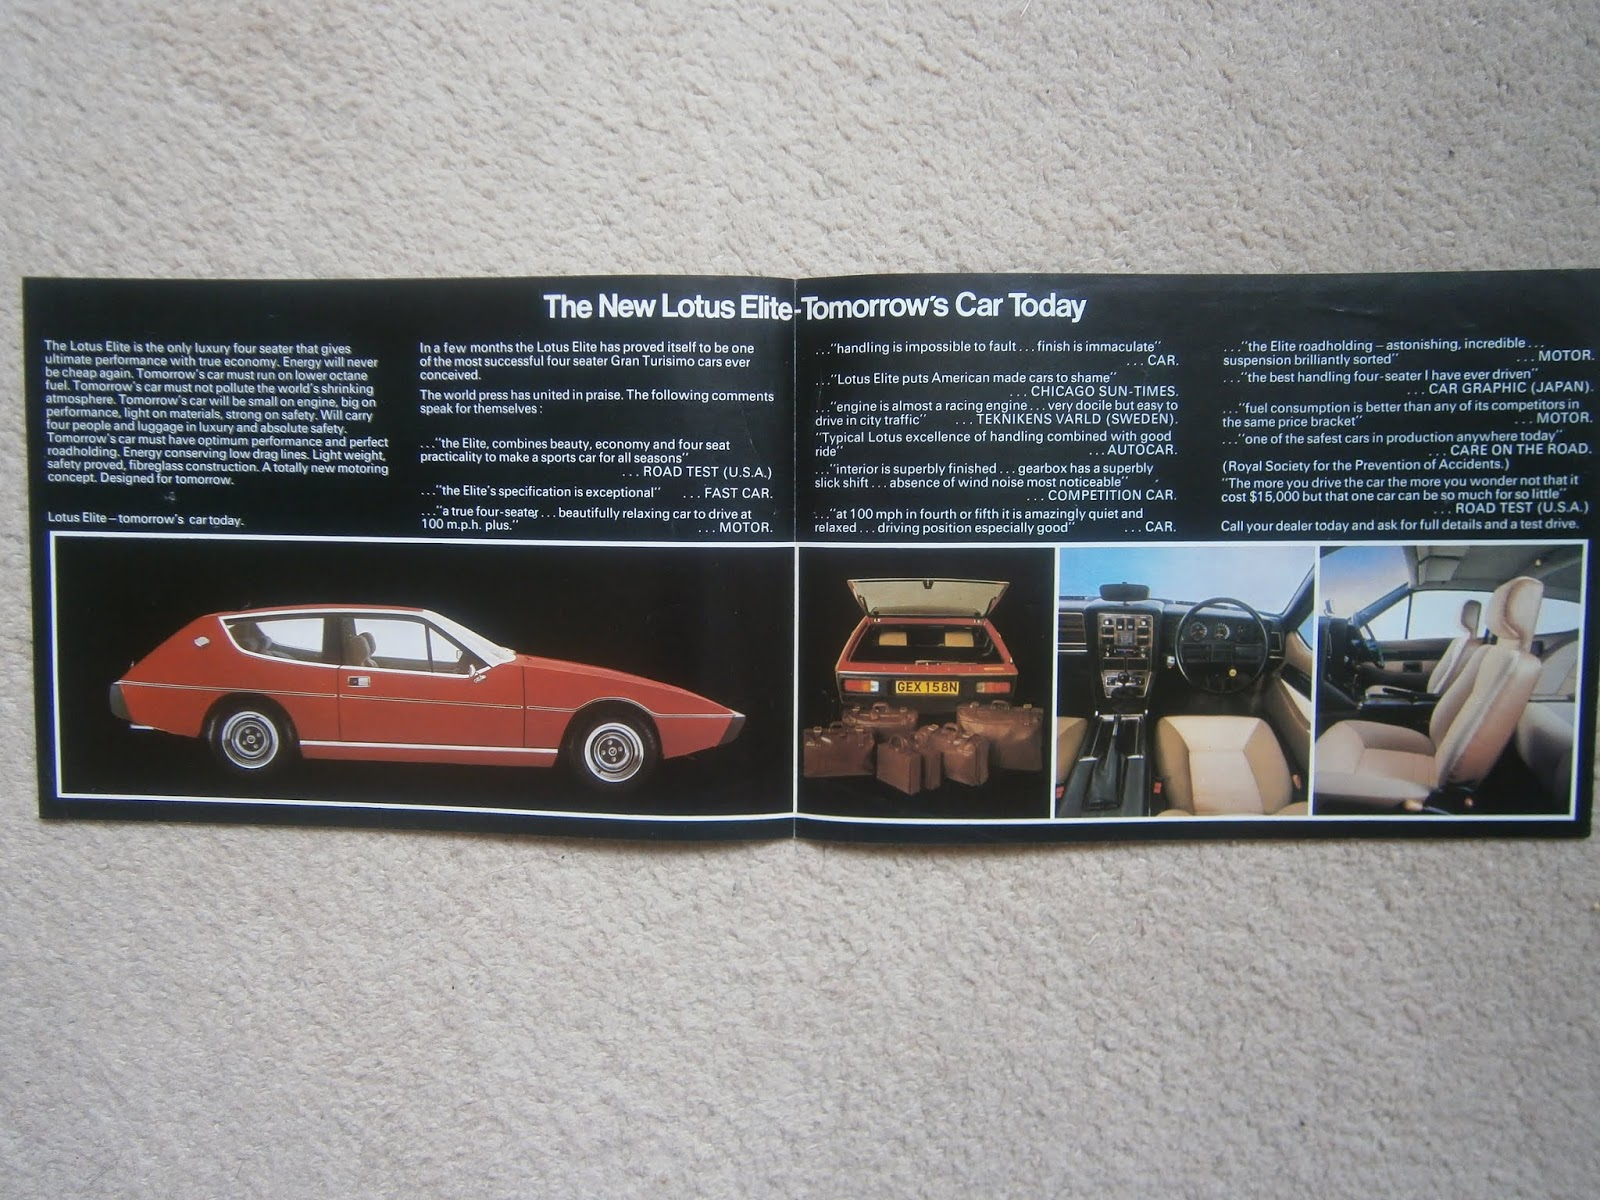 Lotus Excel Restoration May 2018 Hyundai Pony Wiring Diagram The Above Brochure Is A Mystery Its 4 Page Printed Spread Containing Only Material Although Print Quality High On Thinner